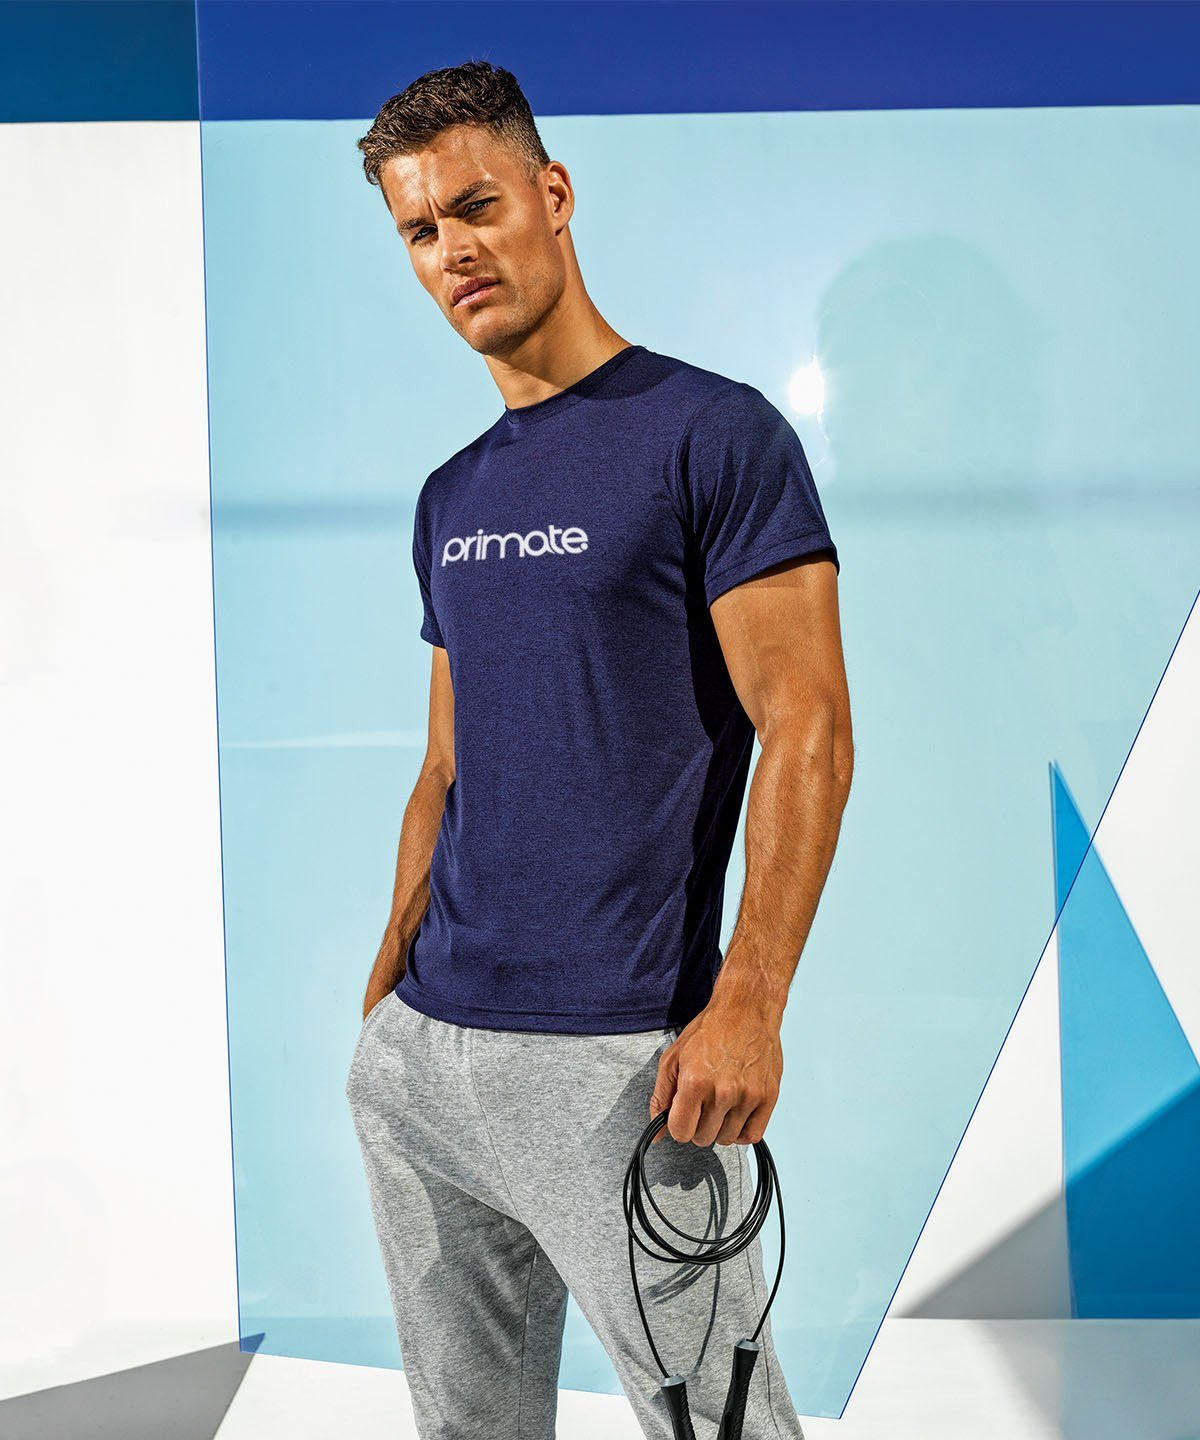 Performance T-Shirt Primate Activewear